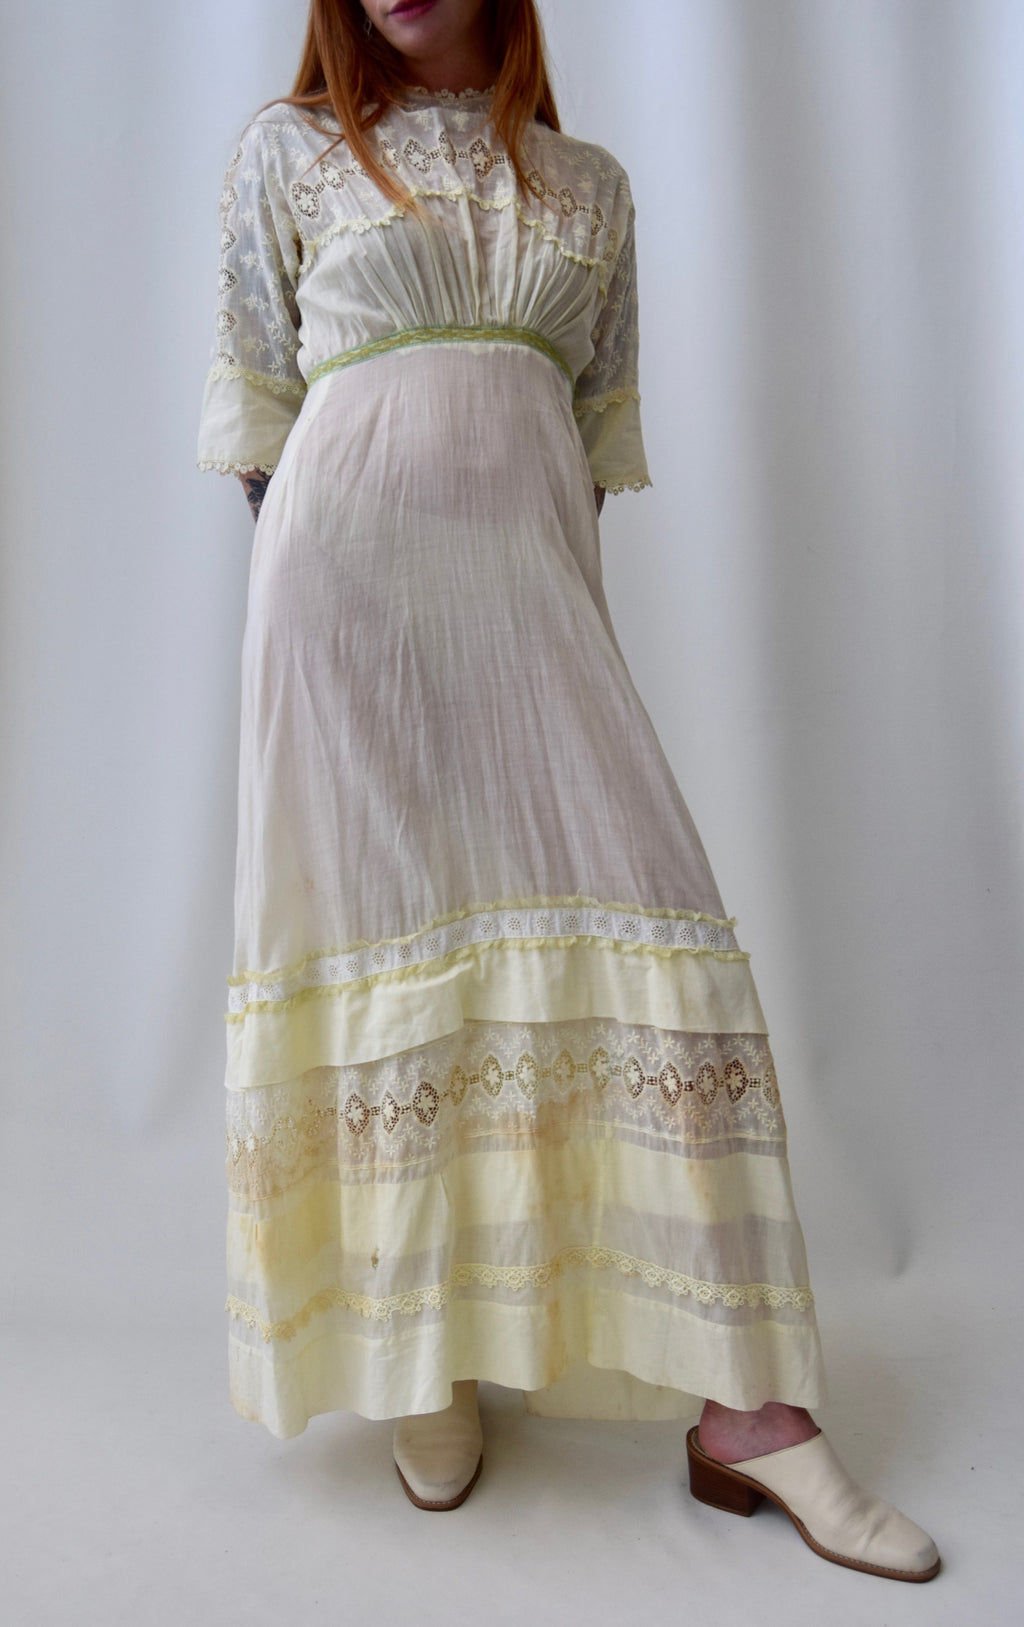 Lemon Chiffon Antique Nightgown